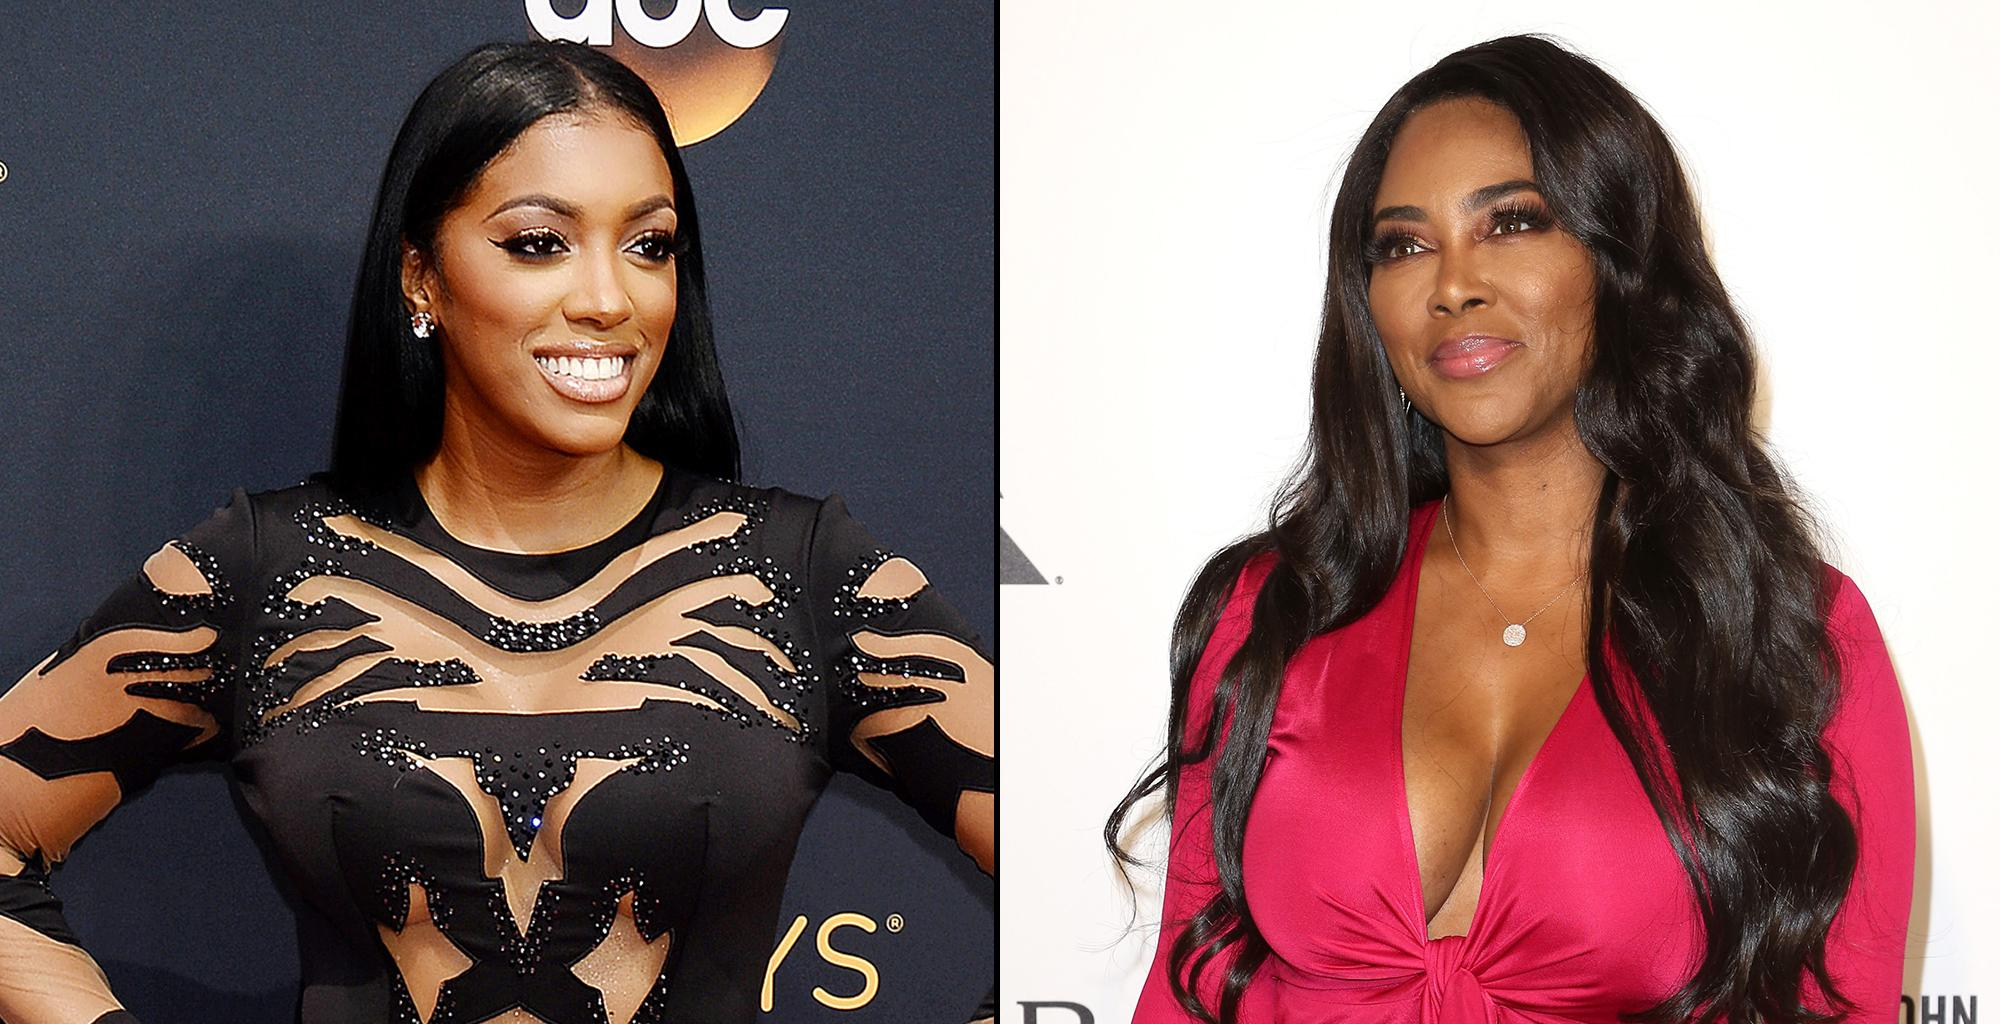 Porsha Williams Is A Queen In Her Latest Photos With Baby PJ - Fans Love Her New Relationship With Kenya Moore